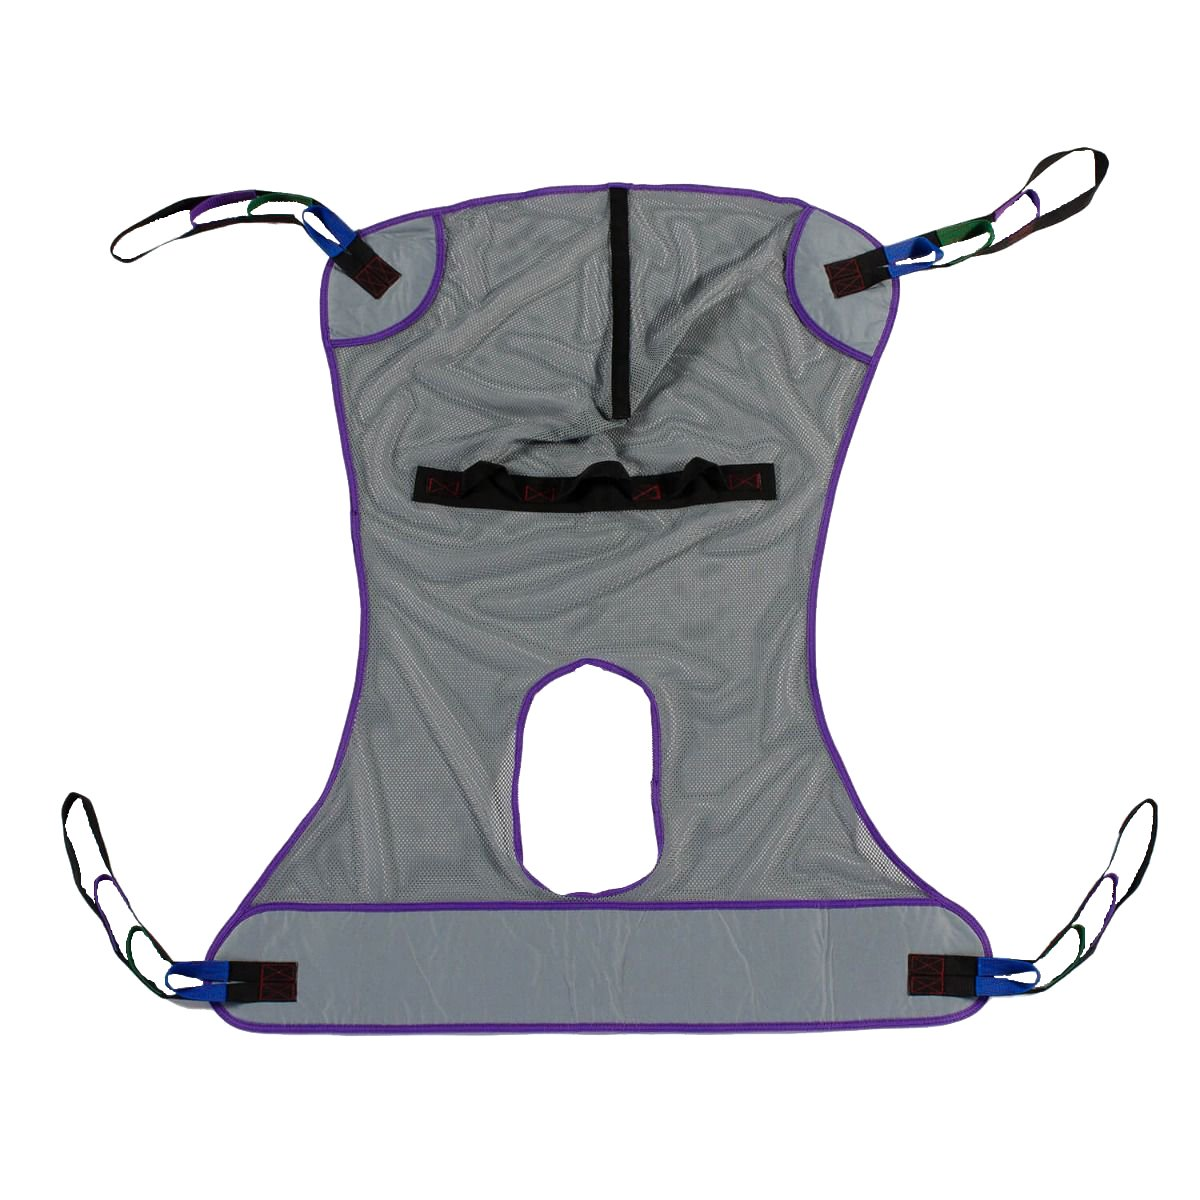 Full Body Mesh Commode Patient Lift Sling, 600lb Weight Capacity (Large)